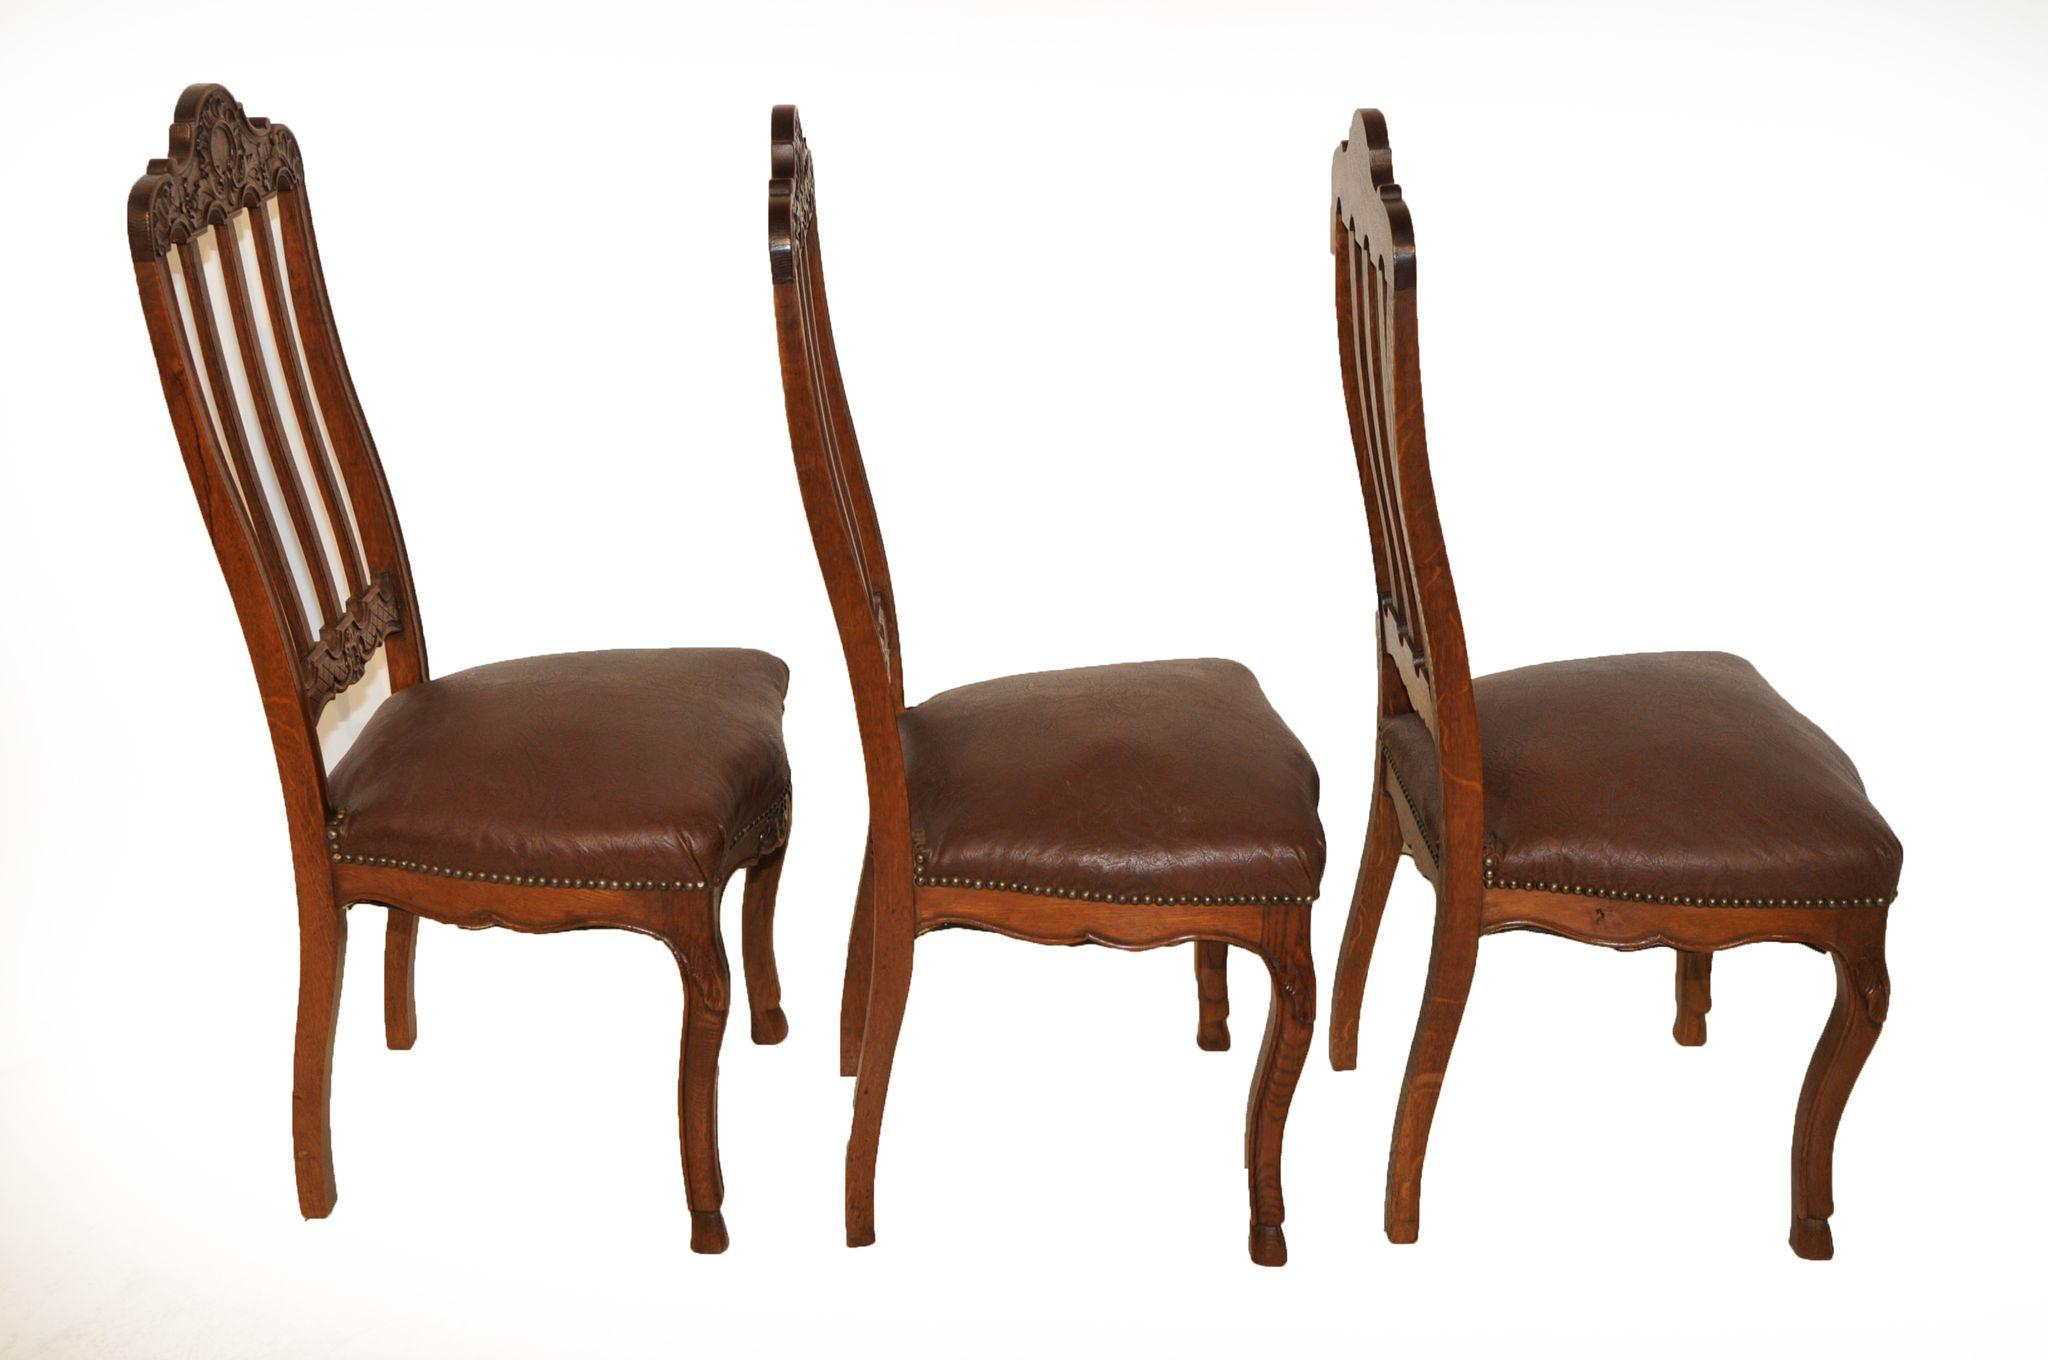 Vintage French Provincial Dining Room Chairs, Set of Six ...